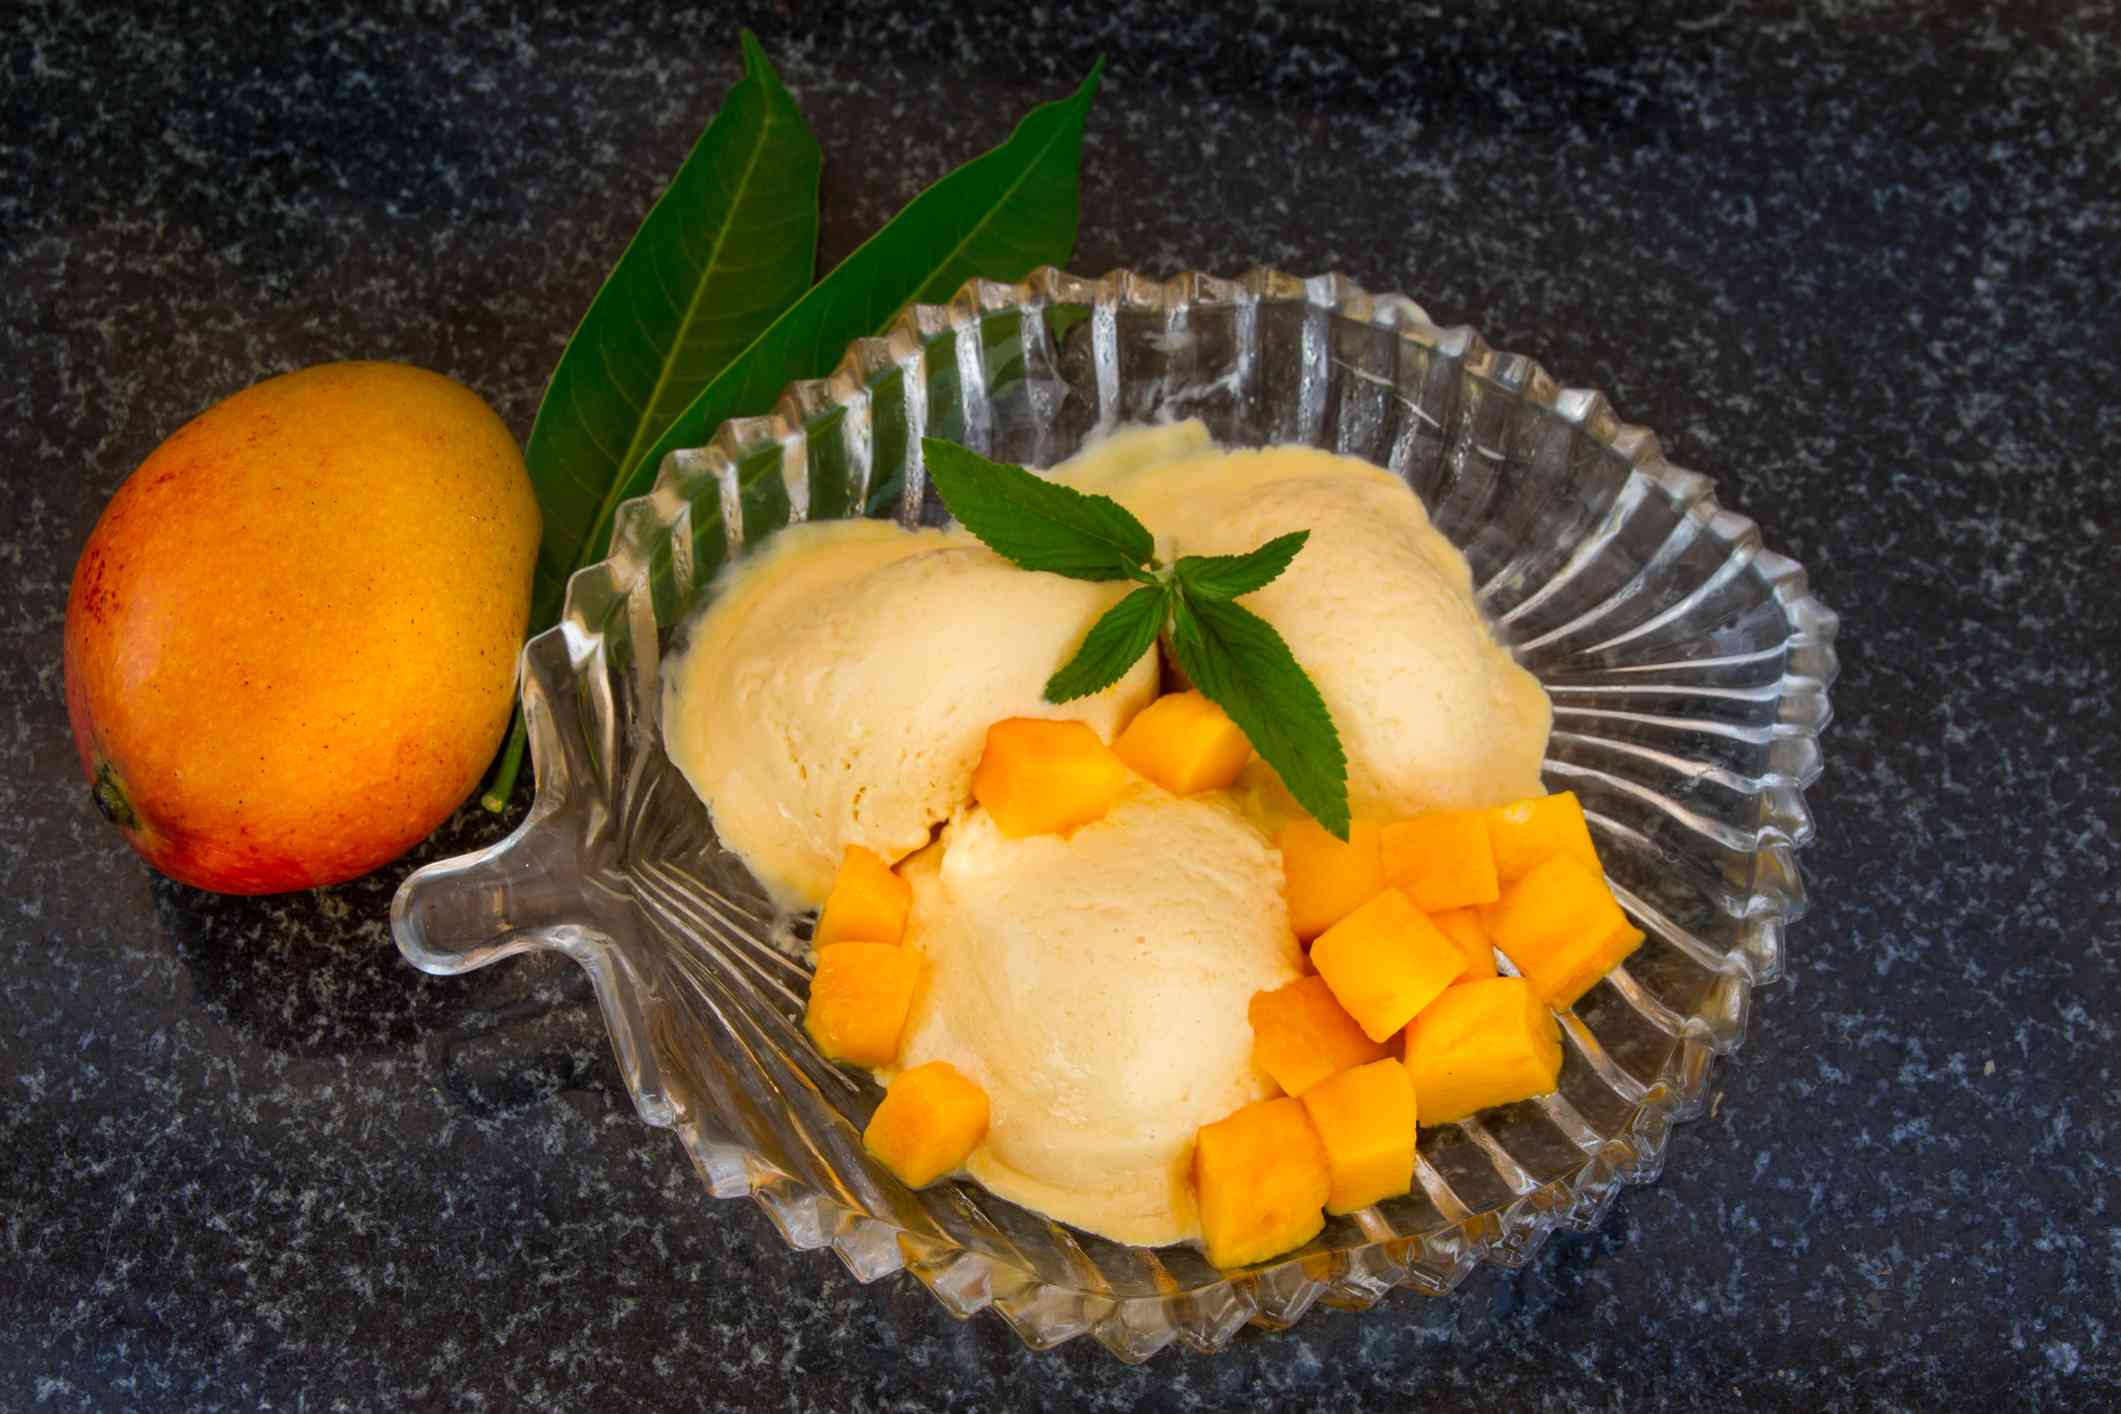 Mango ice cream with fresh mango slices with leaves mint on a glass plate